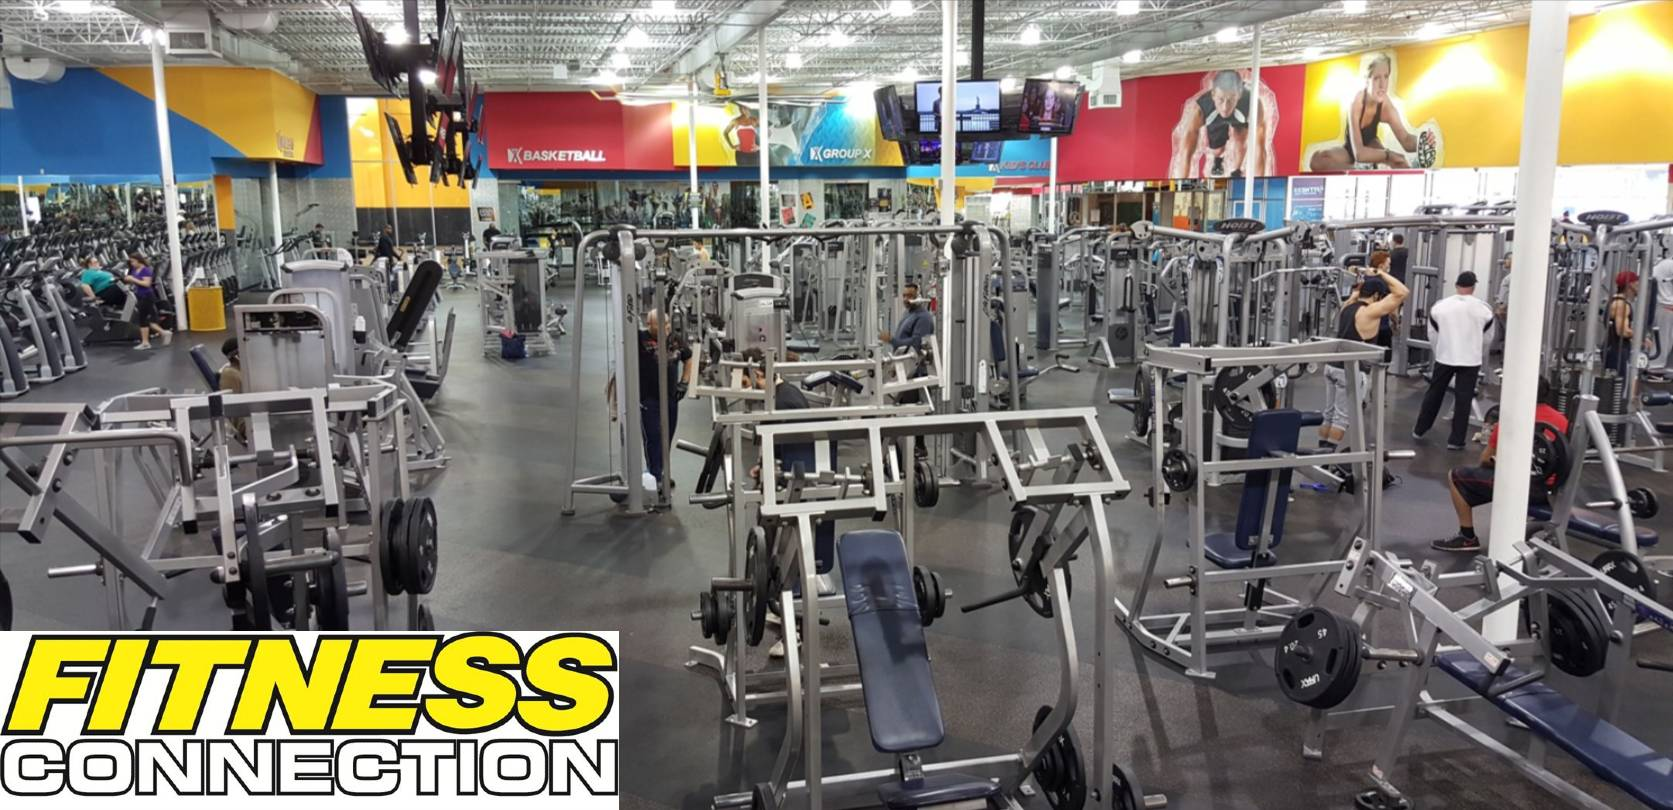 Fitness-Connection-Hours-locations-Prices